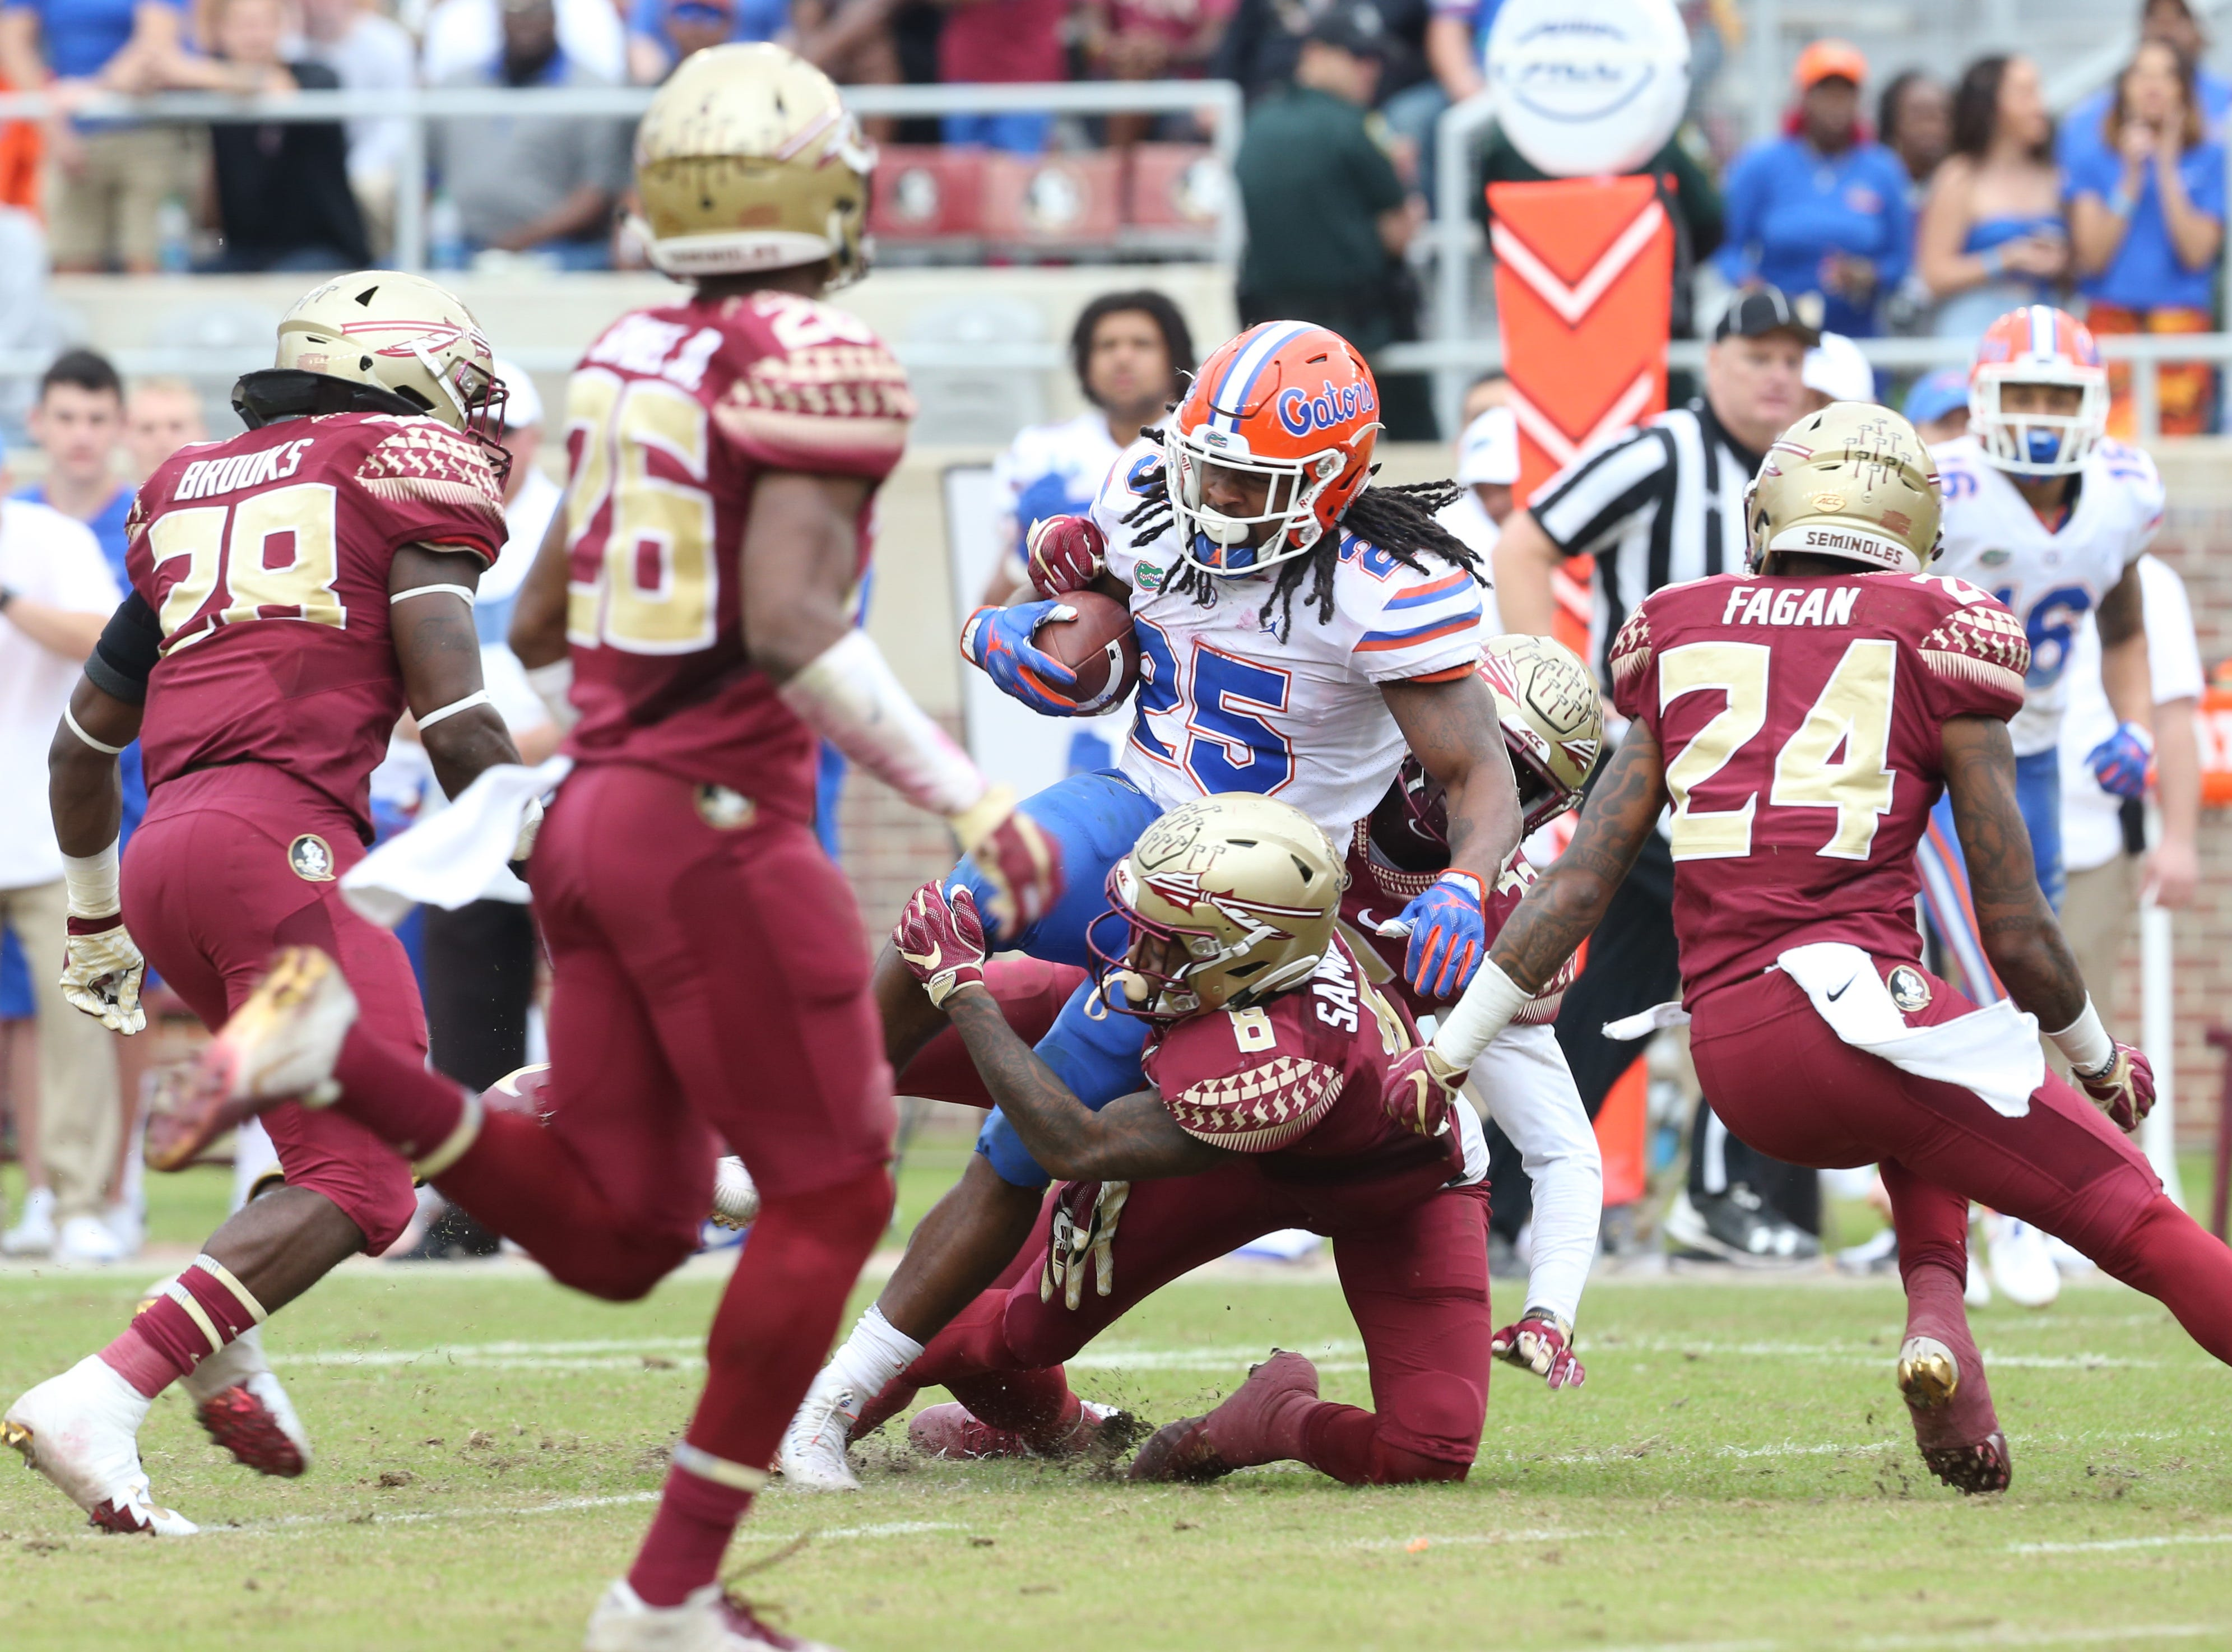 Florida Gators running back Jordan Scarlett (25) gets tackled by the Seminole defense as the Florida State Seminoles take on their rival the Florida Gators in college football at Doak S. Campbell Stadium, Saturday, Nov. 24, 2018.